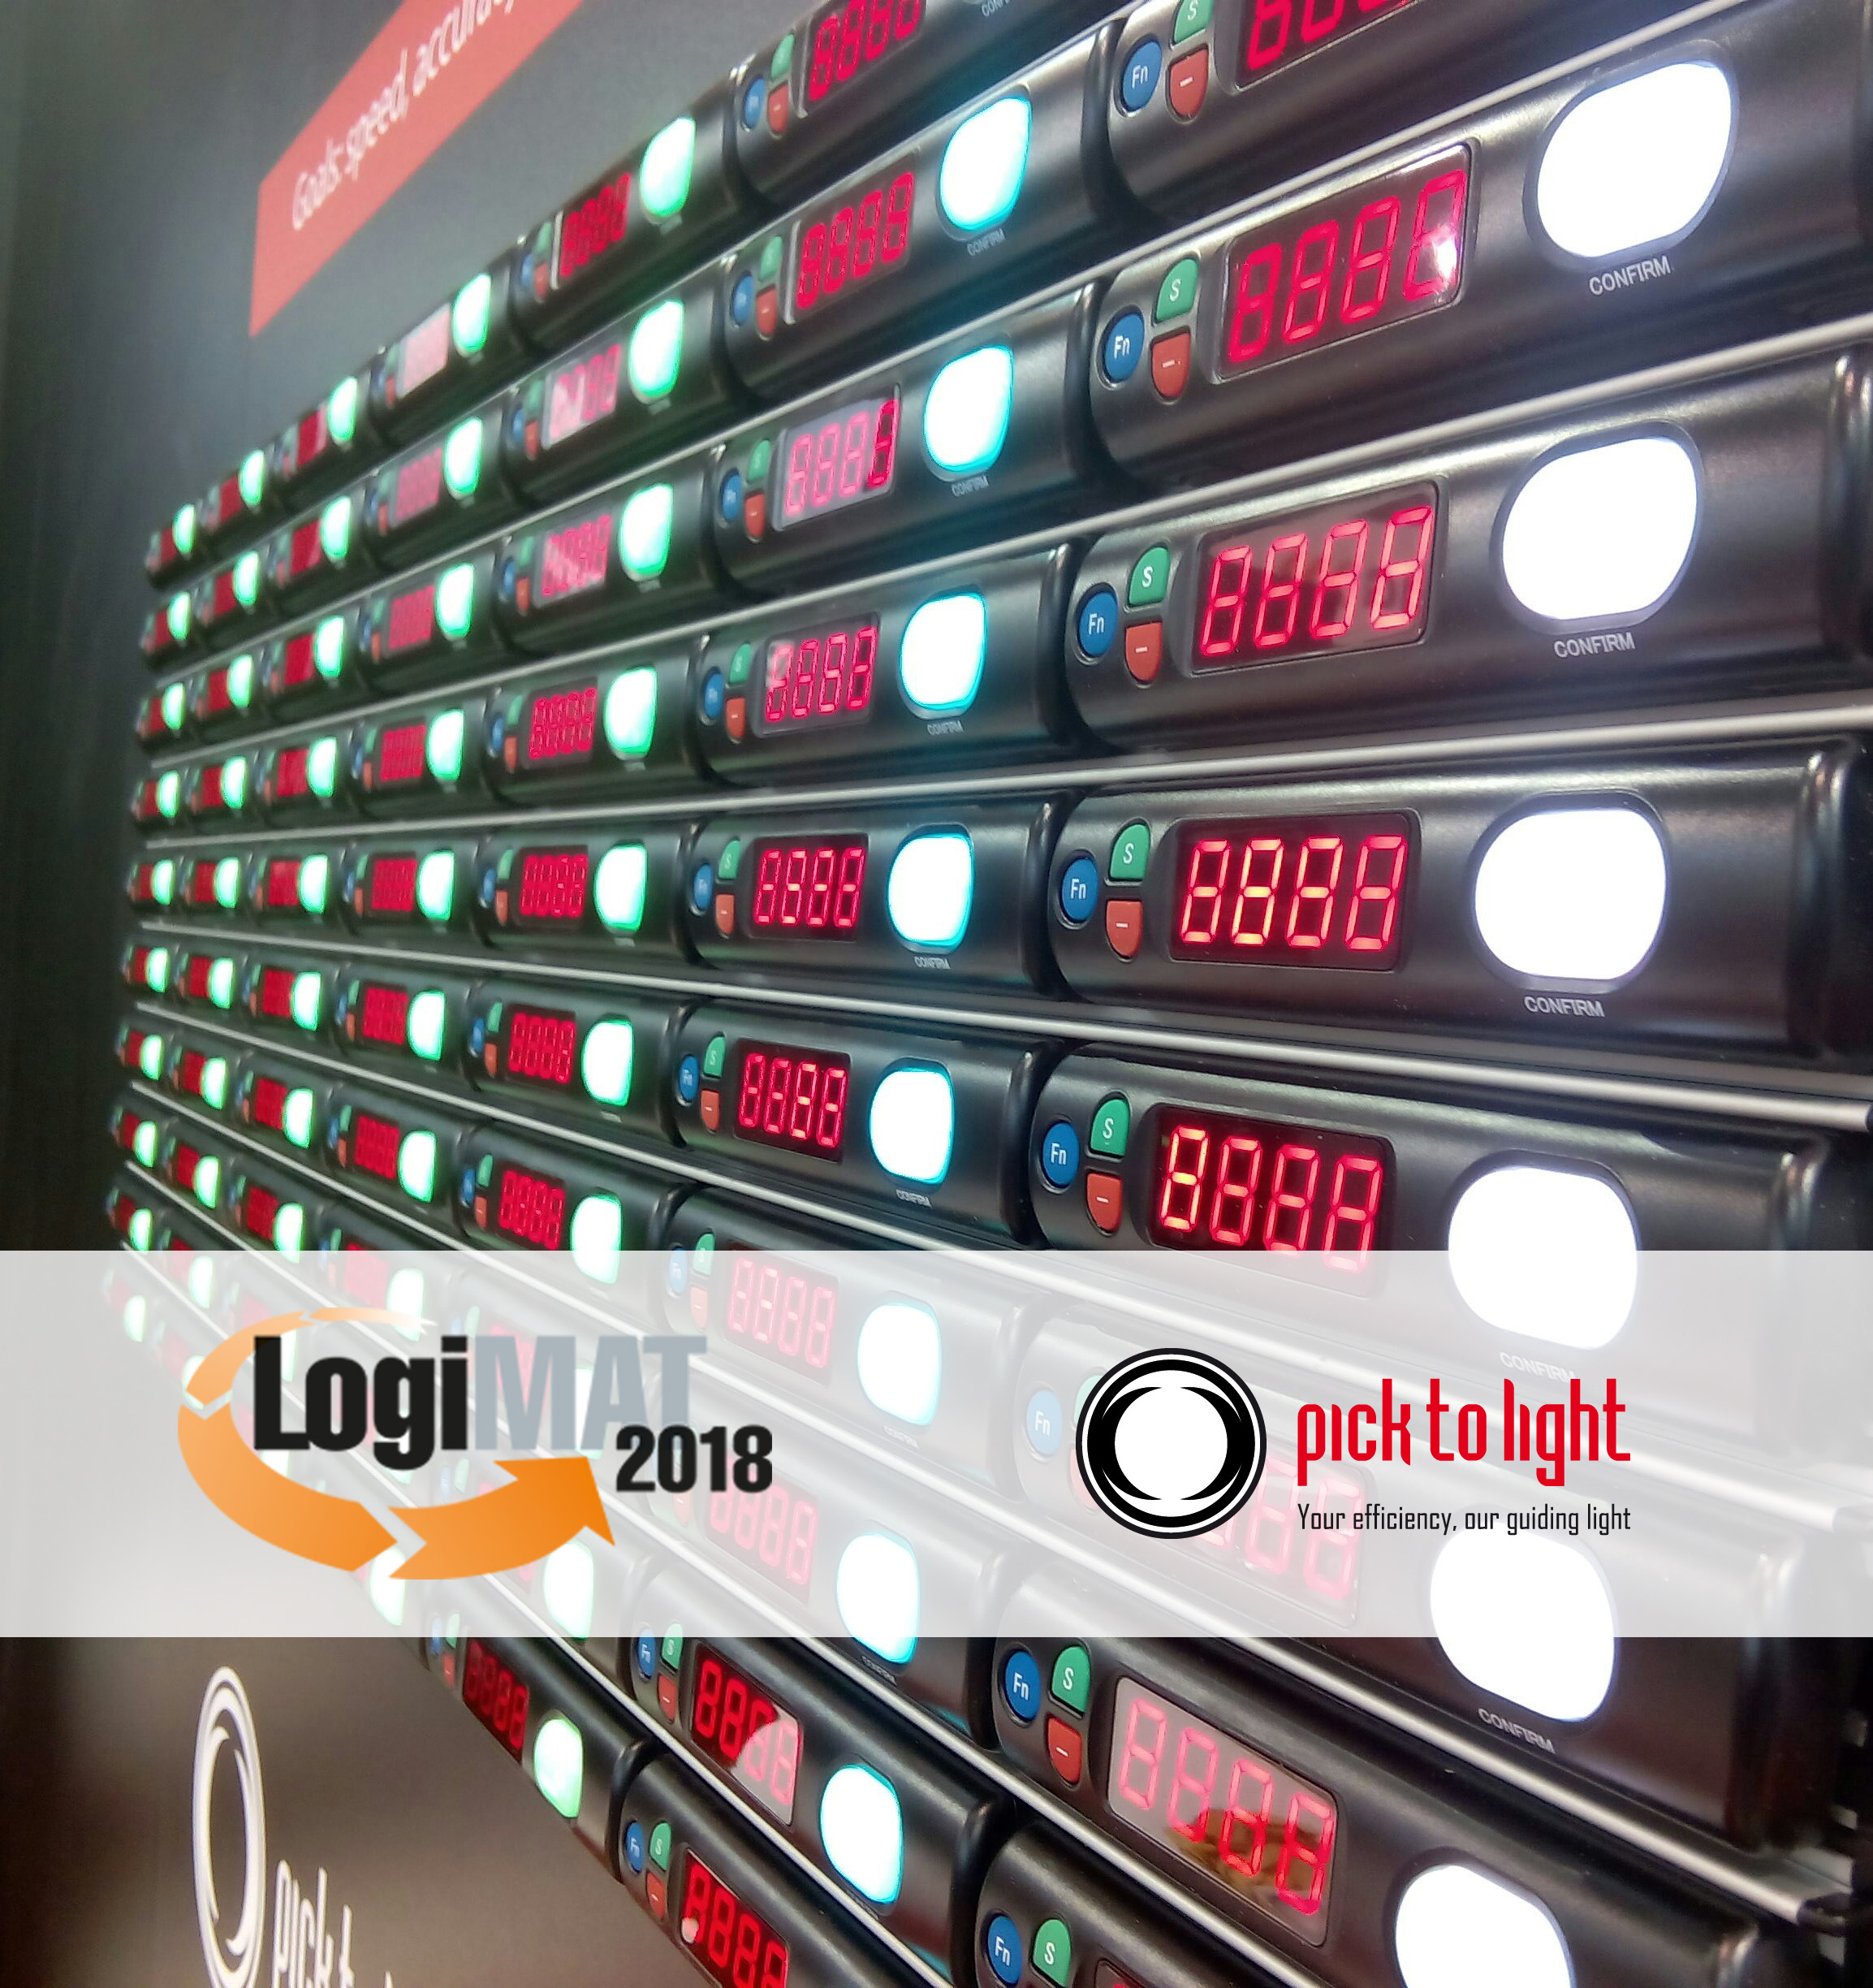 Pick To Light Systems present once again at the 16th edition of LOGIMAT